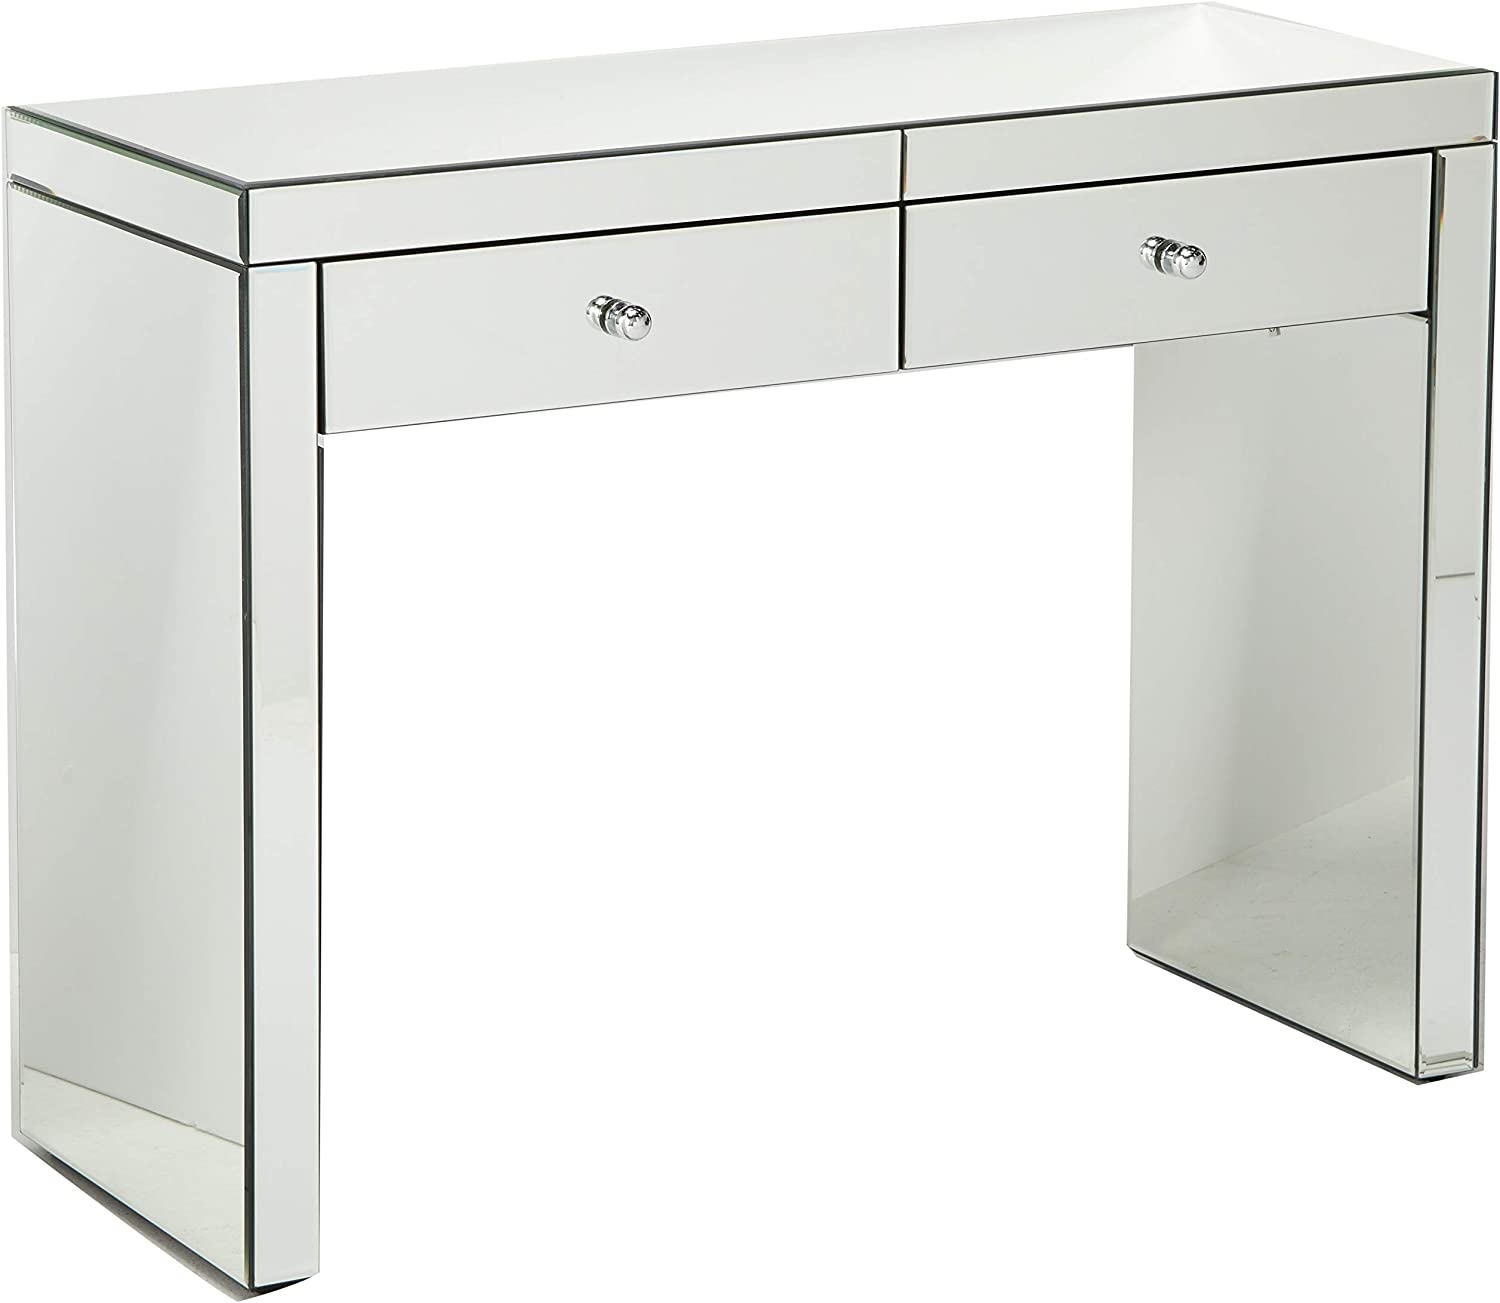 Christopher Knight Home Jacinda Mirrored 2-Drawer Console Table